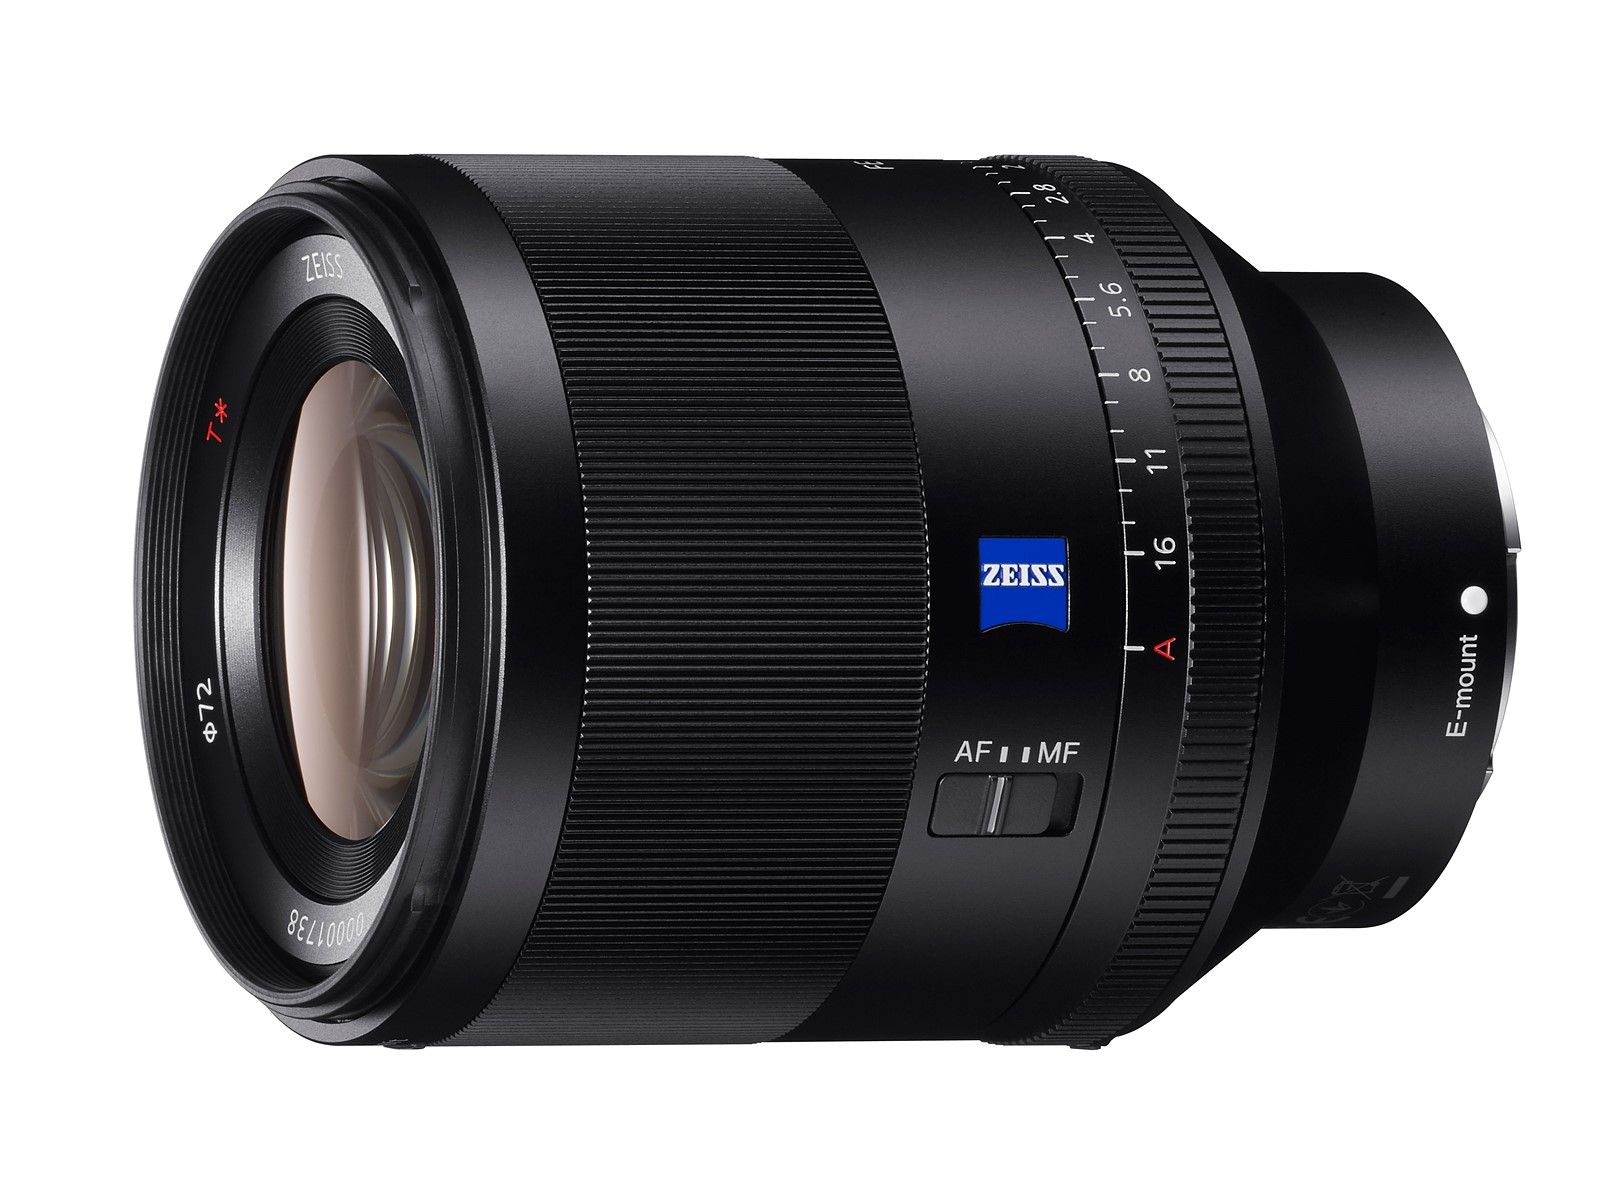 Sony FE 50mm F1.4 ZA prime lens announced